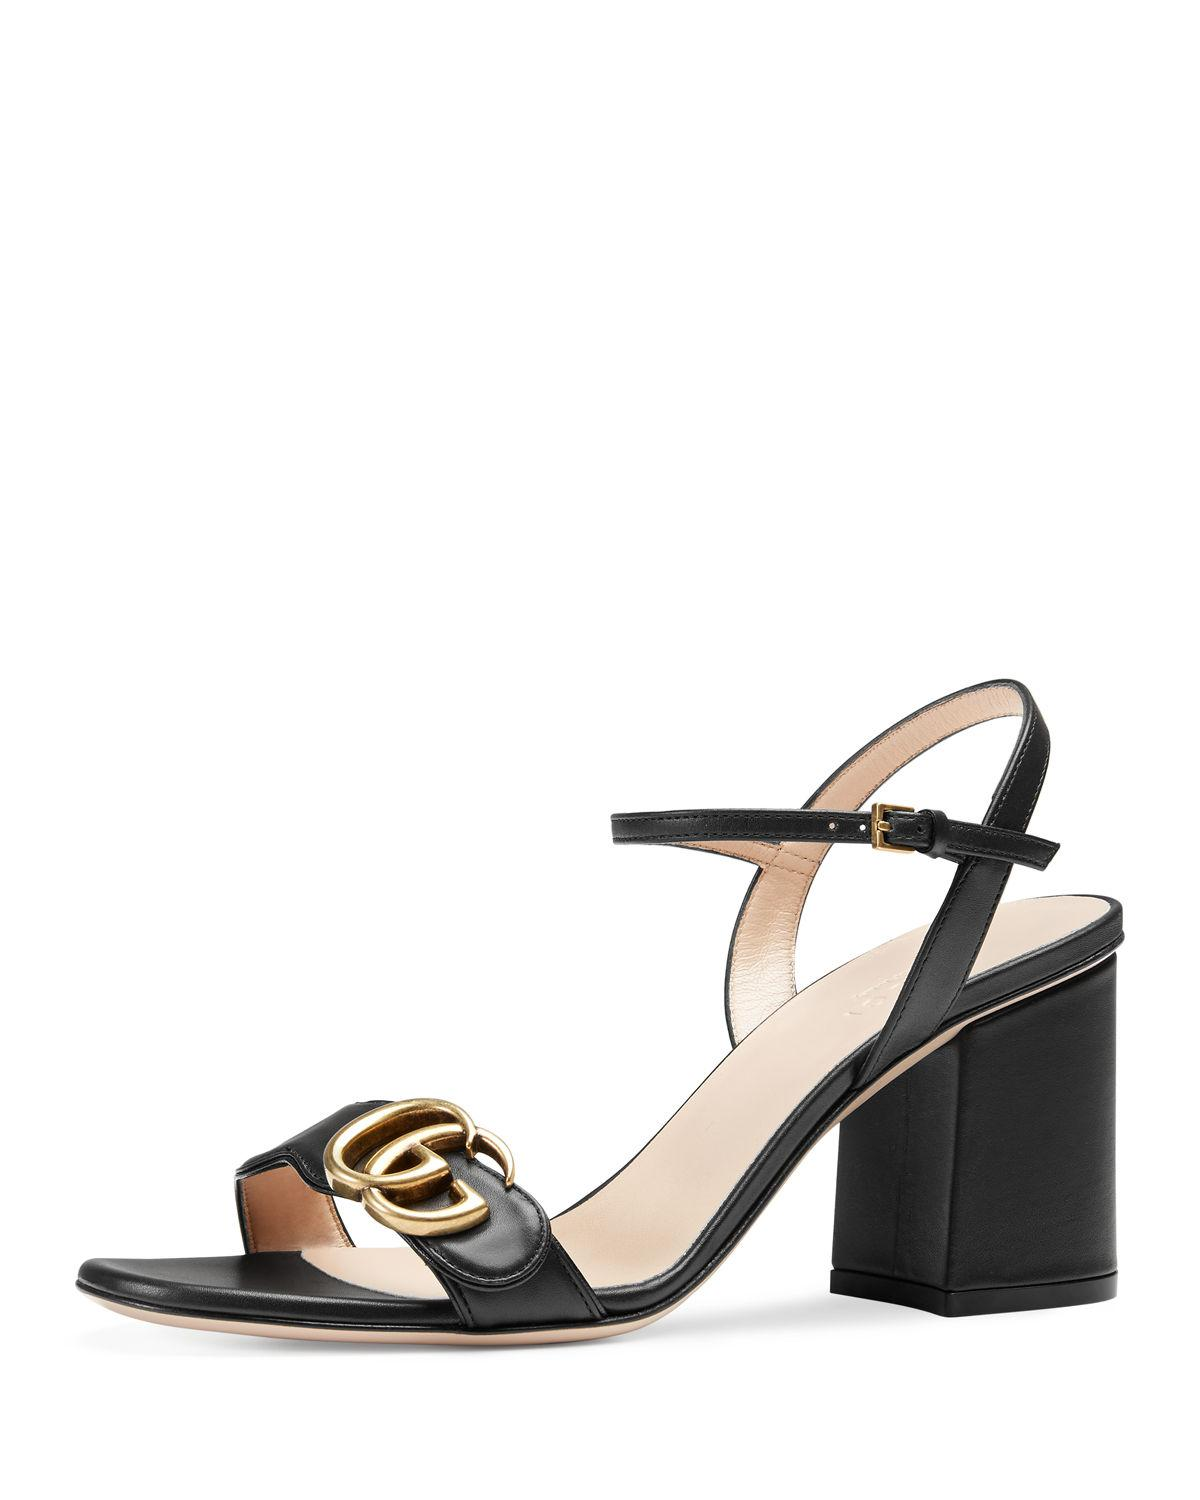 b68fbe43ec2e Lyst - Gucci Marmont Leather GG Block-heel Sandals in Black